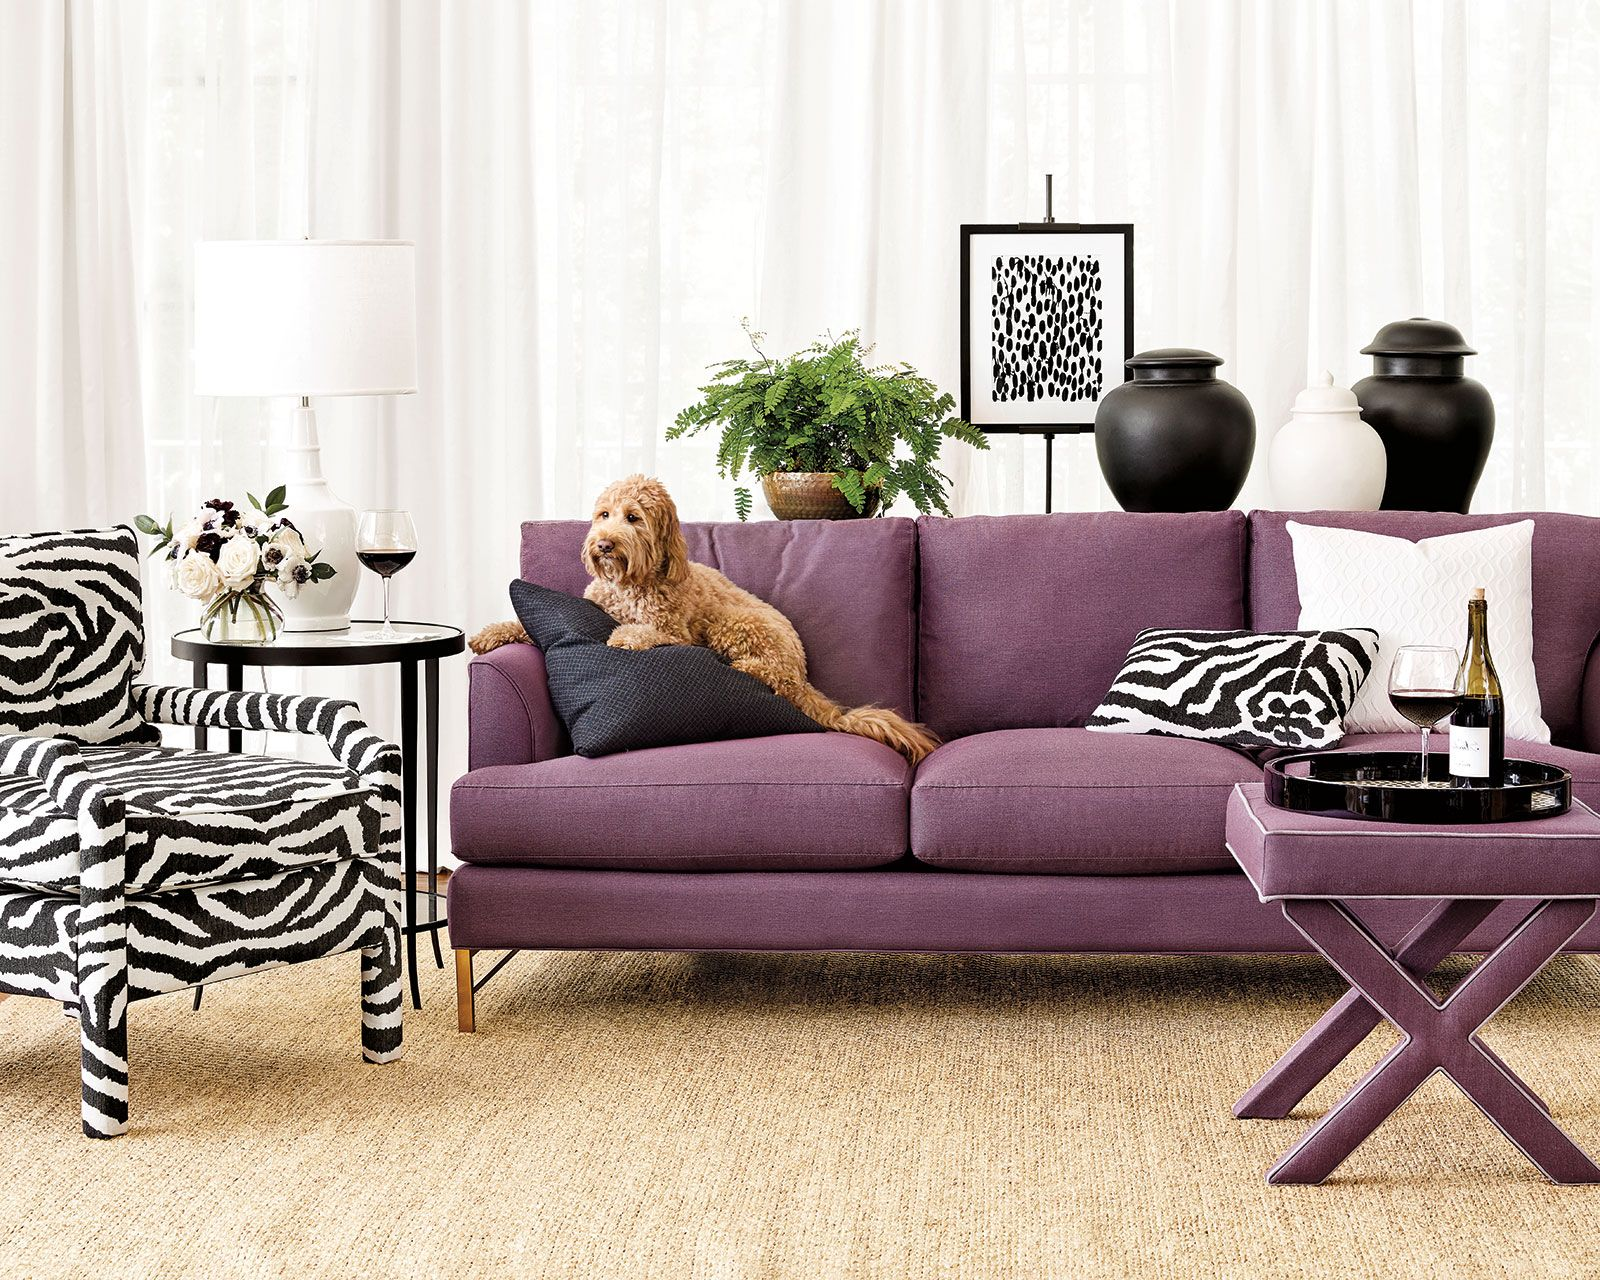 Surprising Best Sofas For Dogs For The Home Cool Couches Best Sofa Creativecarmelina Interior Chair Design Creativecarmelinacom